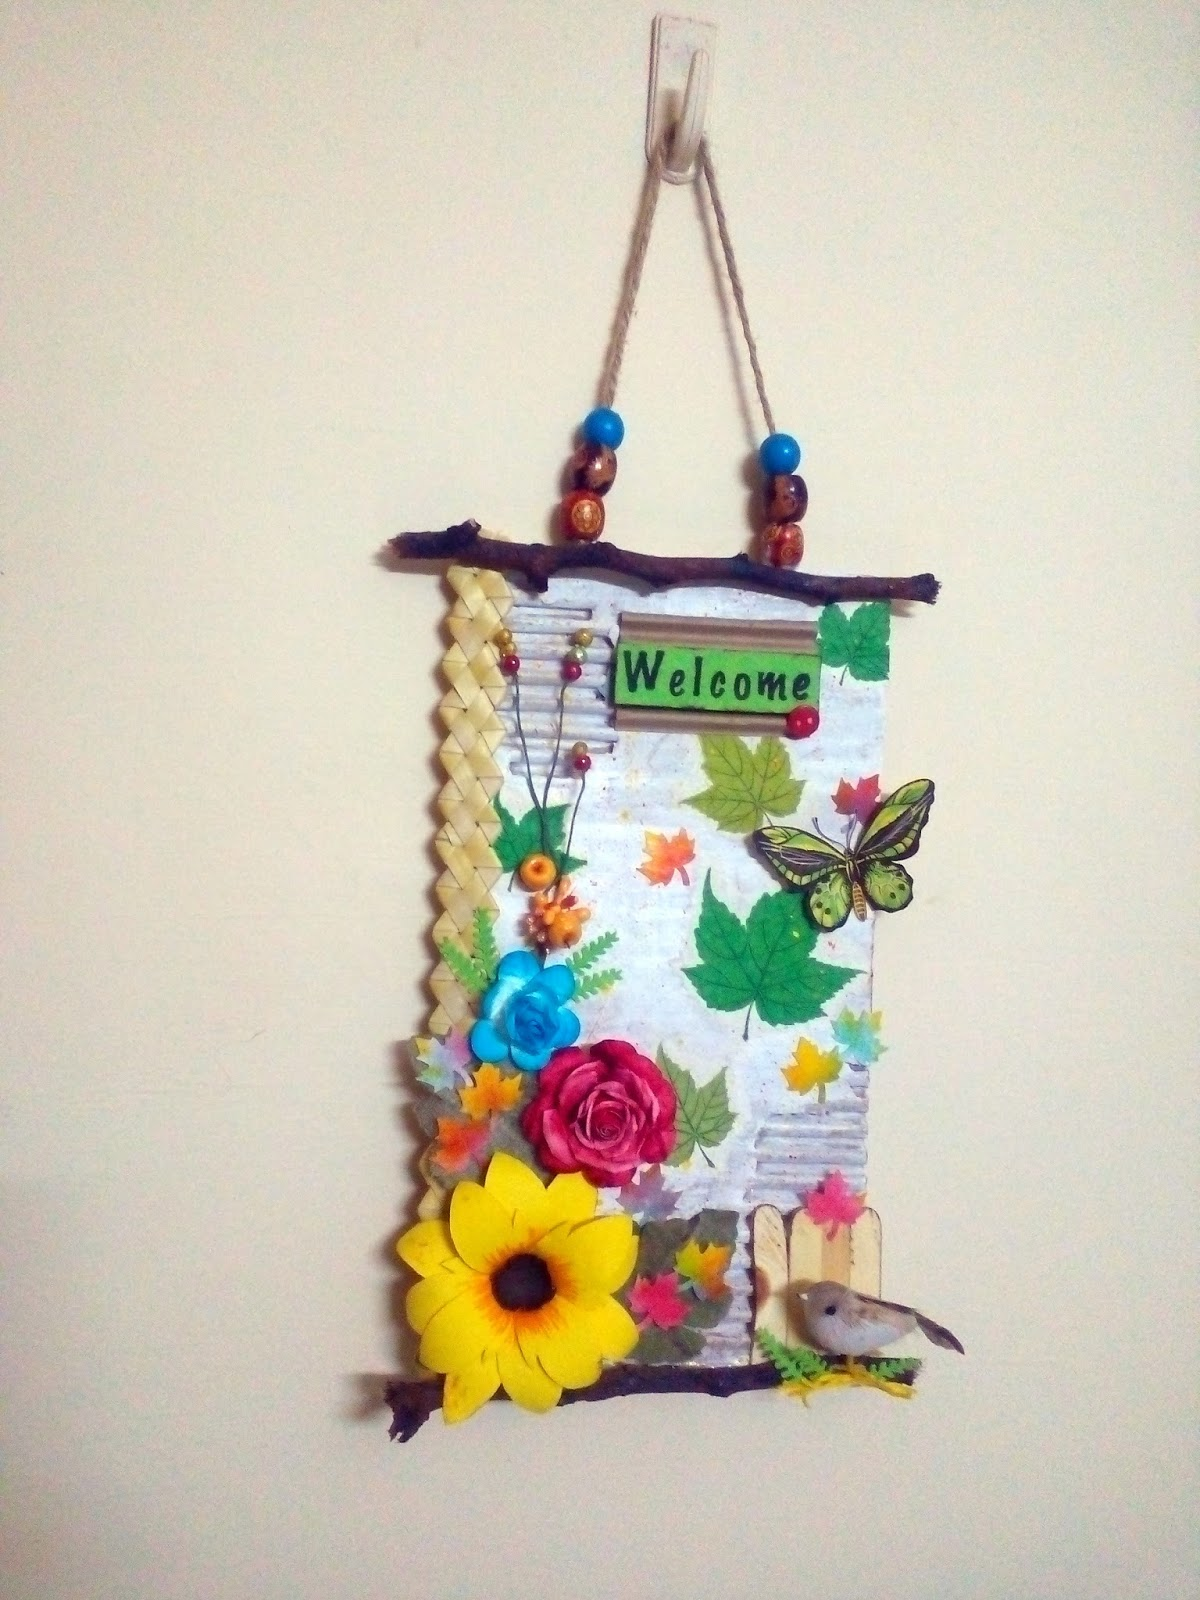 Shining Colours Handmade Crafts Welcome Wall Hanging